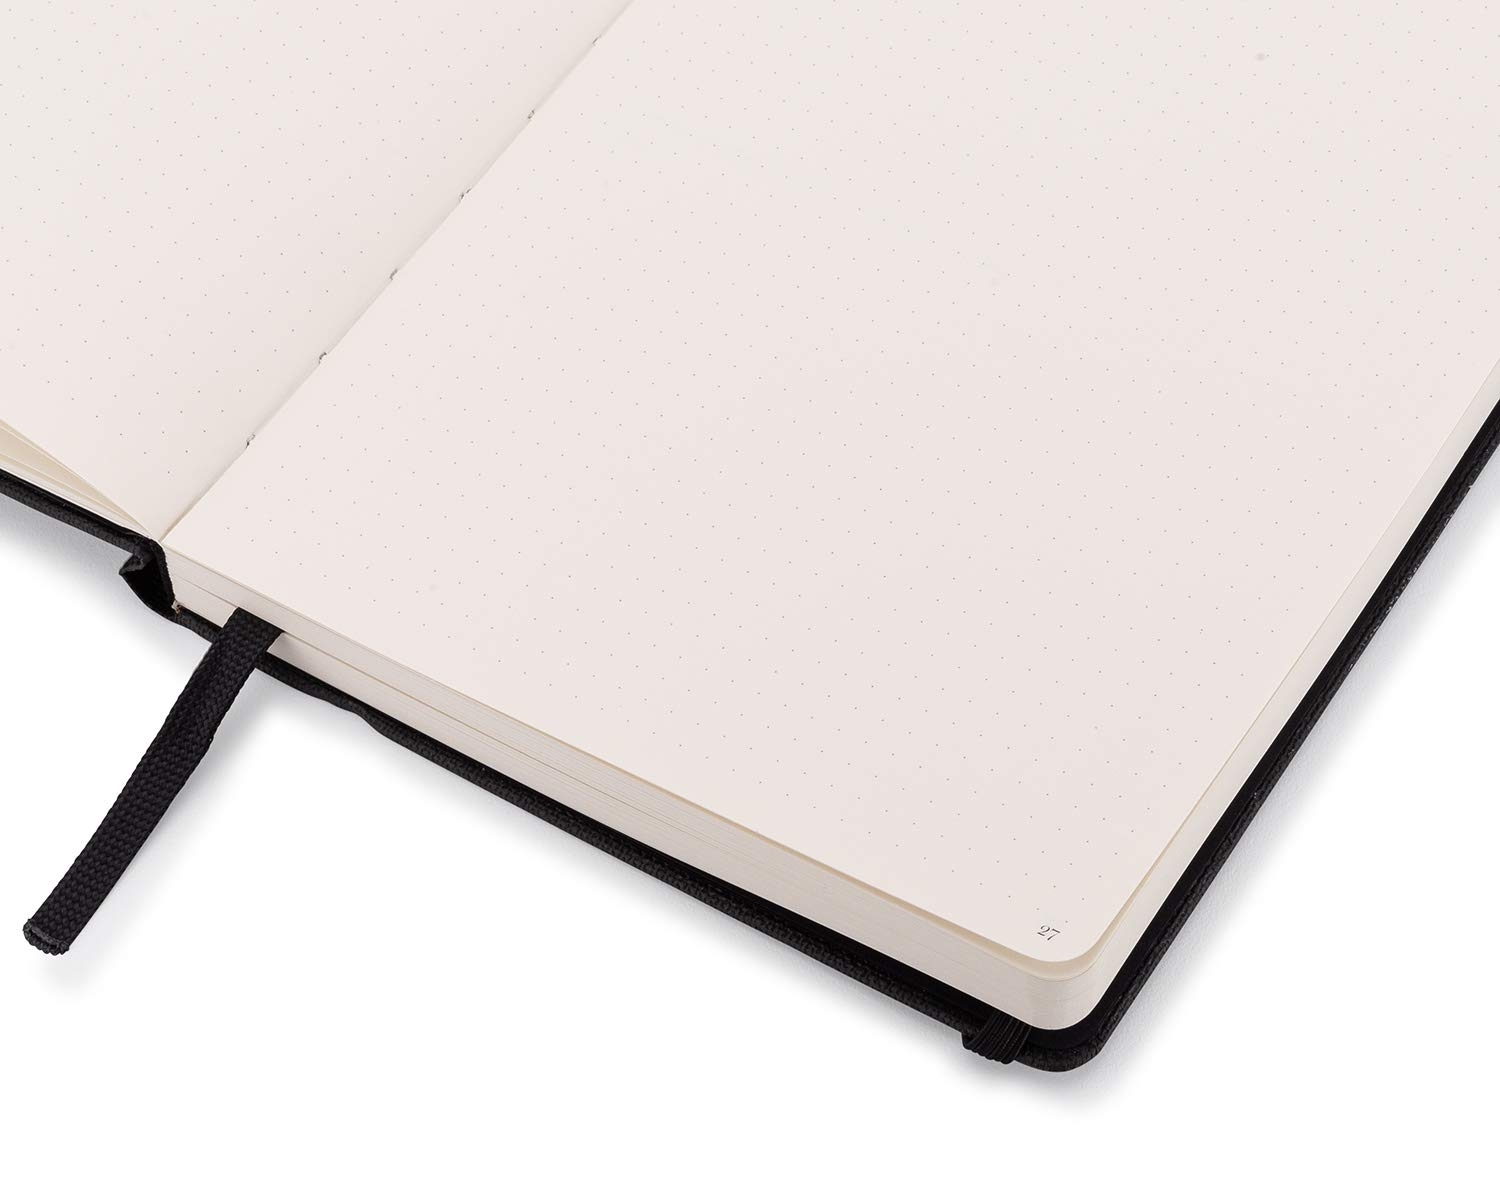 Creative Minds Journal   by Ann Le - Hardcover Journal, Monthly, Weekly Planner. W/Gratitude, Mind Spill Pages, Inspirational Quotes, Mindfulness Exercises, Blank 120 GSM Dot Grid Pages. by Creative Minds Journal (Image #8)